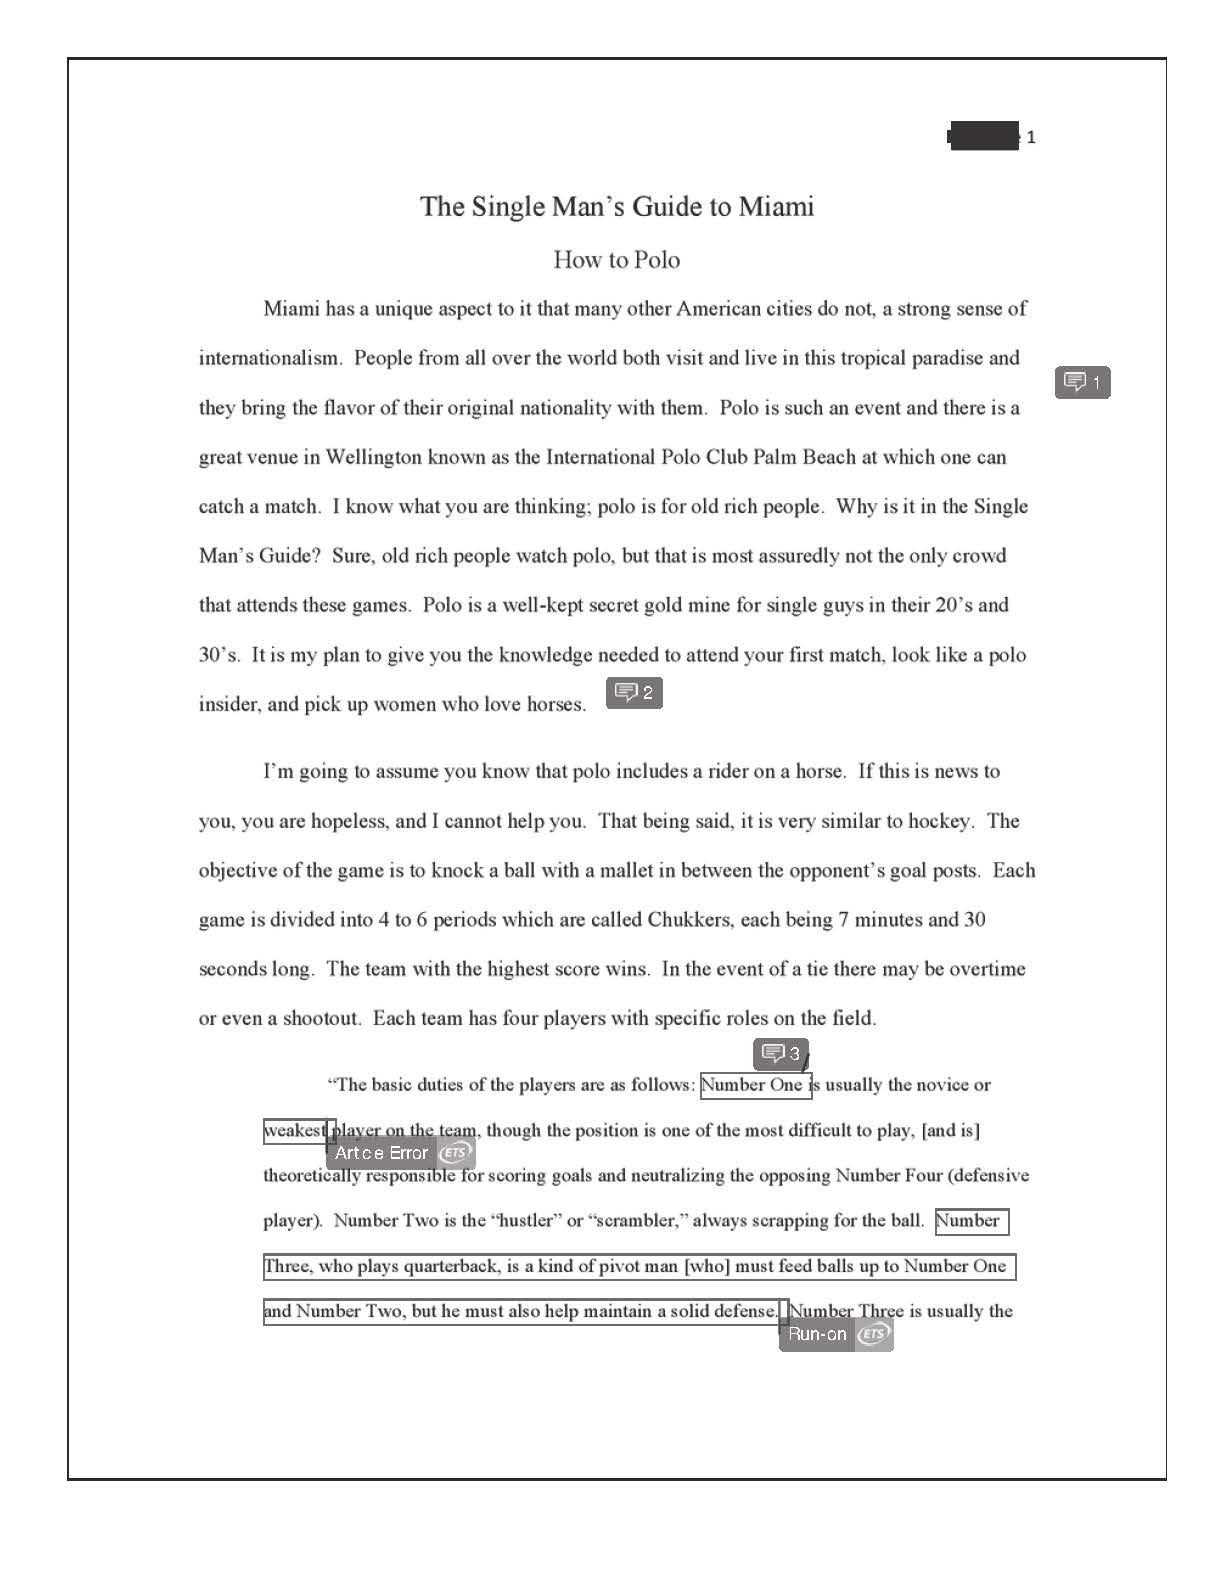 life story essay essay on my life millicent rogers museum my life essays math functions homework help essays application